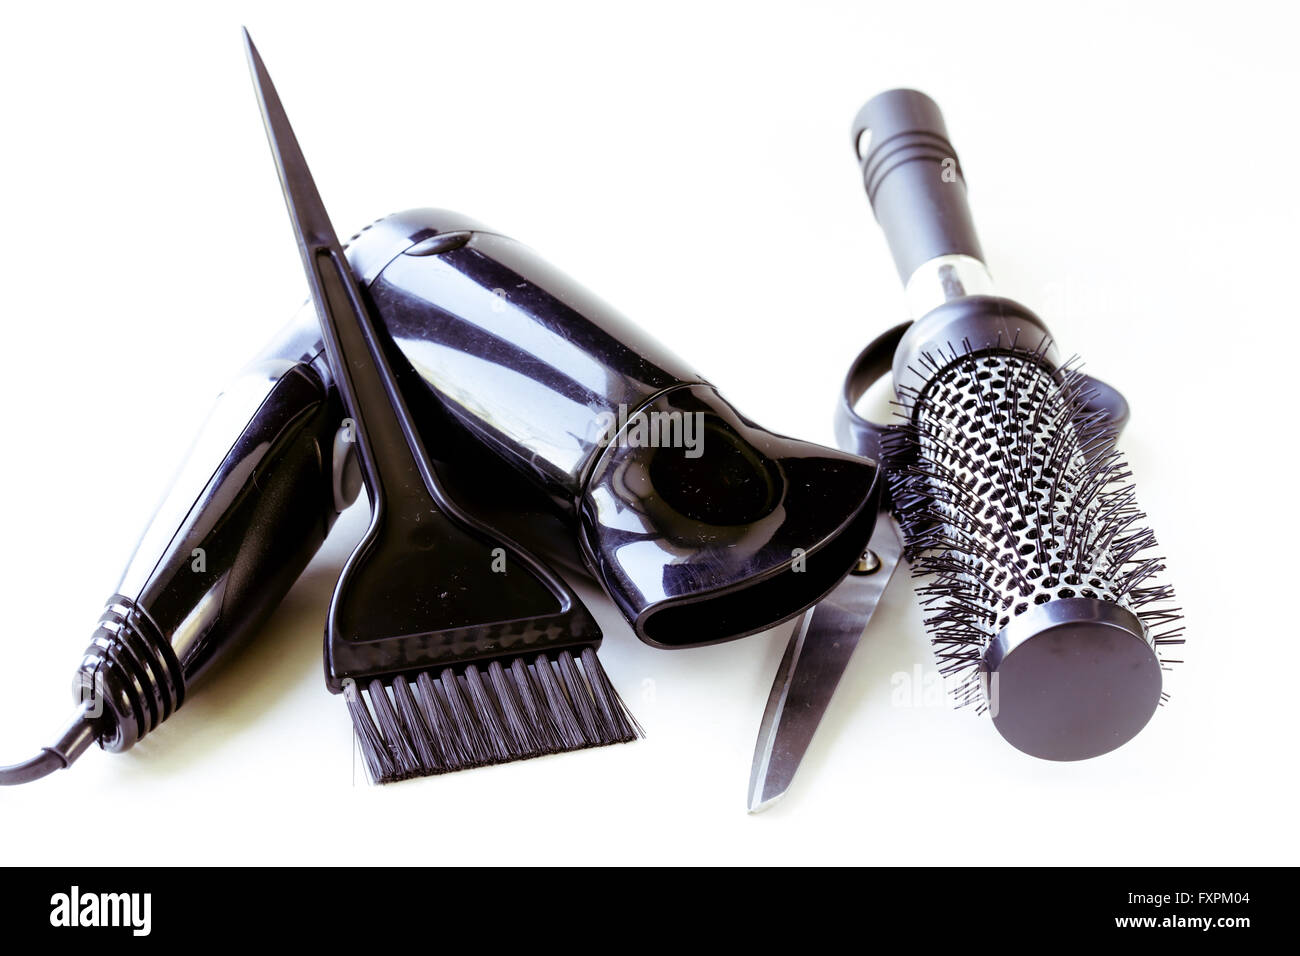 Tools for hairdresser (hair dryers,scissors,combs) - Stock Image